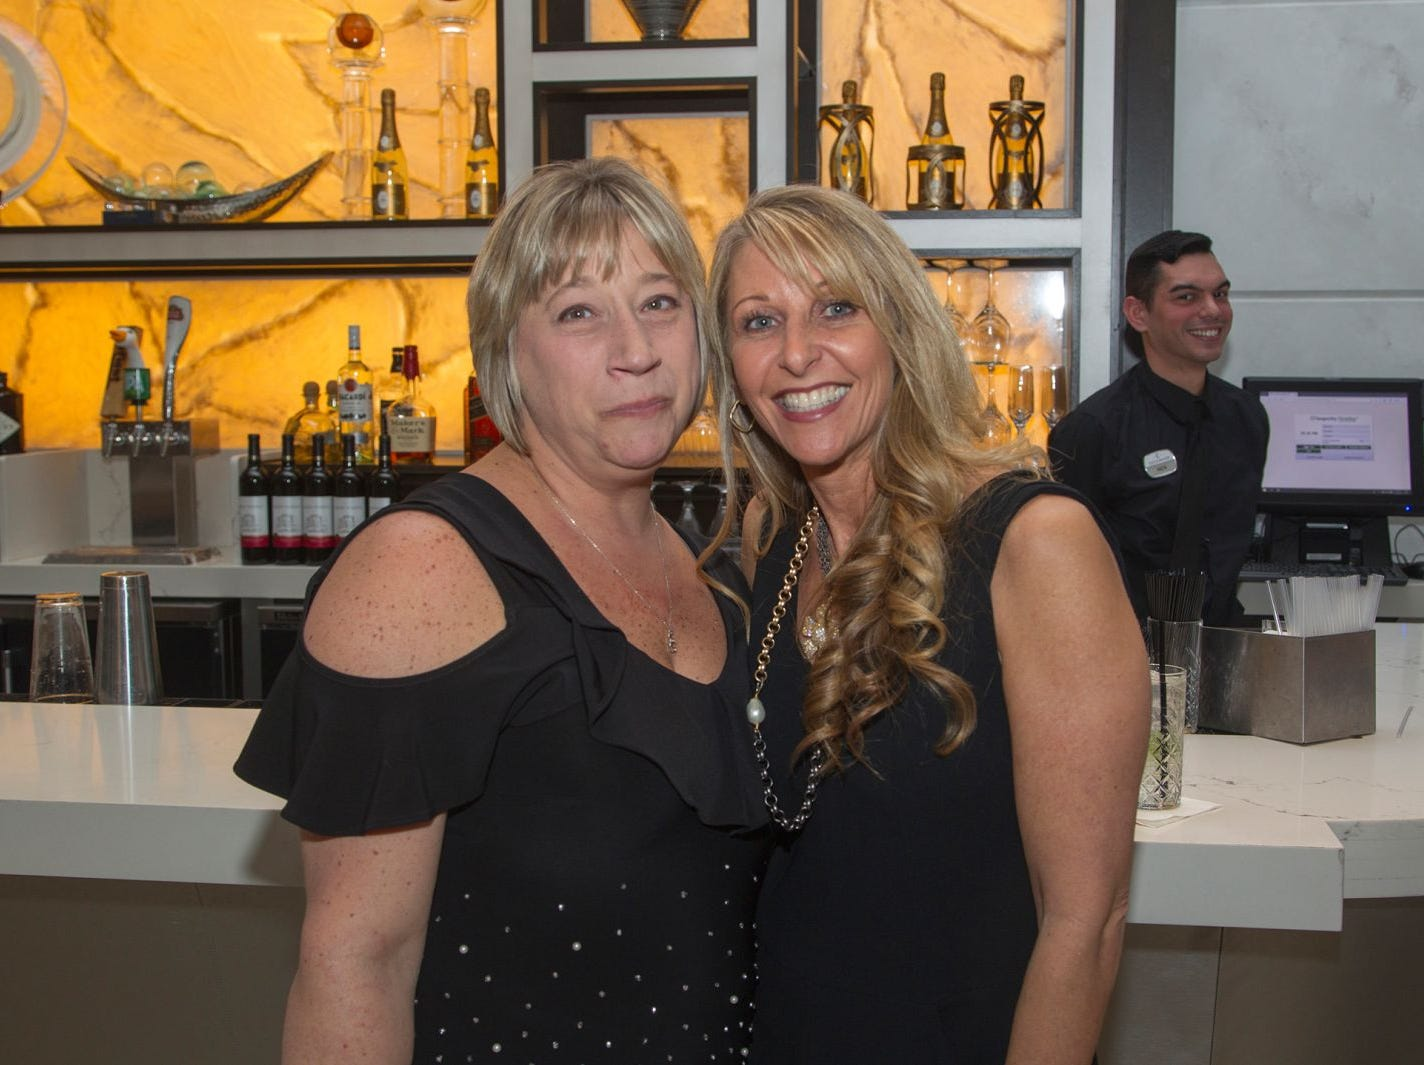 Jayne and Pam. Jewish Family & Children's Services of Northern New Jersey held its annual gala at the Edgewood Country Club in River Vale. The evening honored Shira Feuerstein, Jayne Petak, and Alan Scharfstein for their leadership, support, and dedication. 11/18/2018